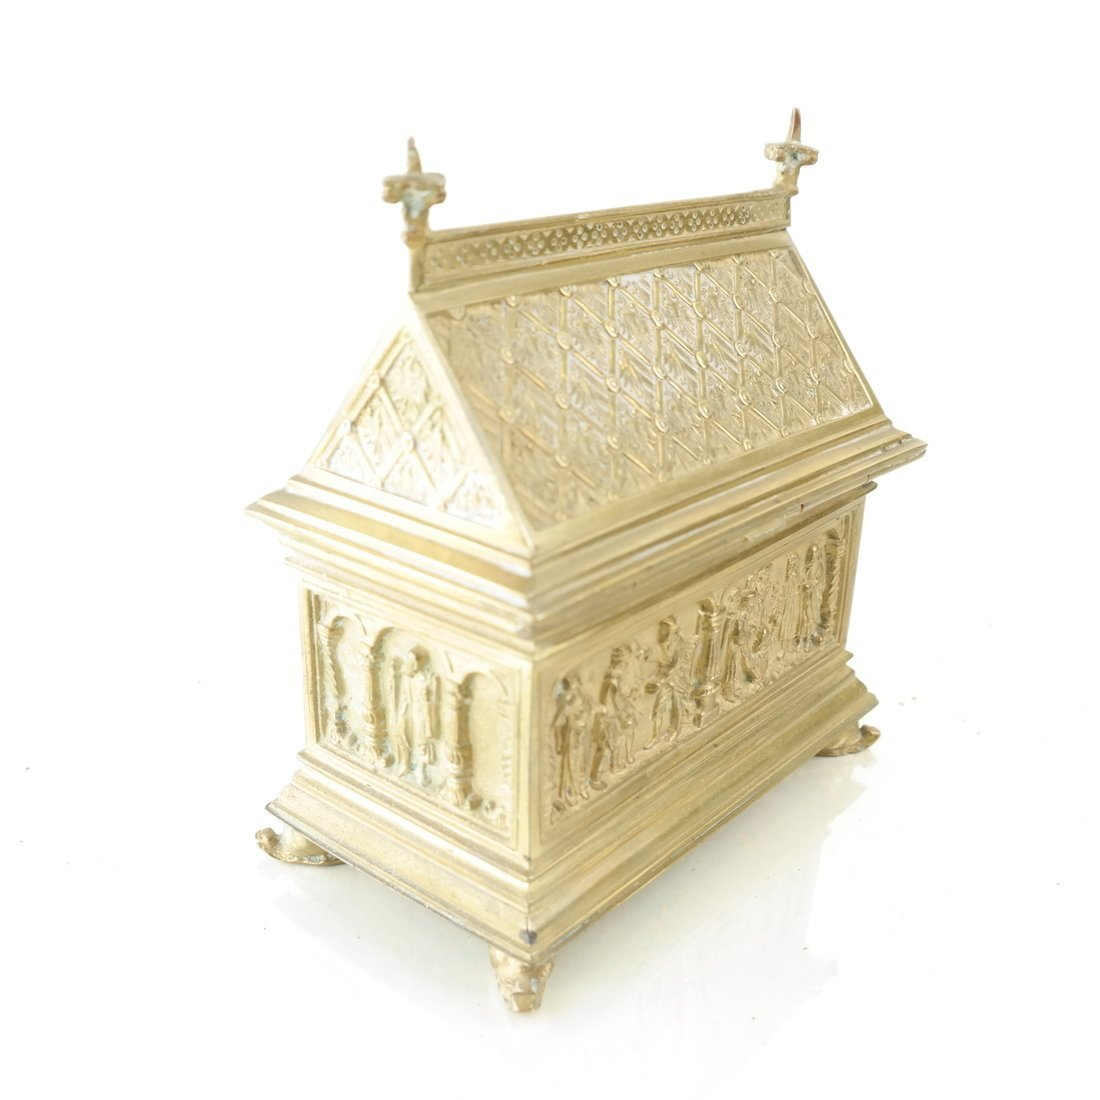 Ornate Casket Form Box - 6